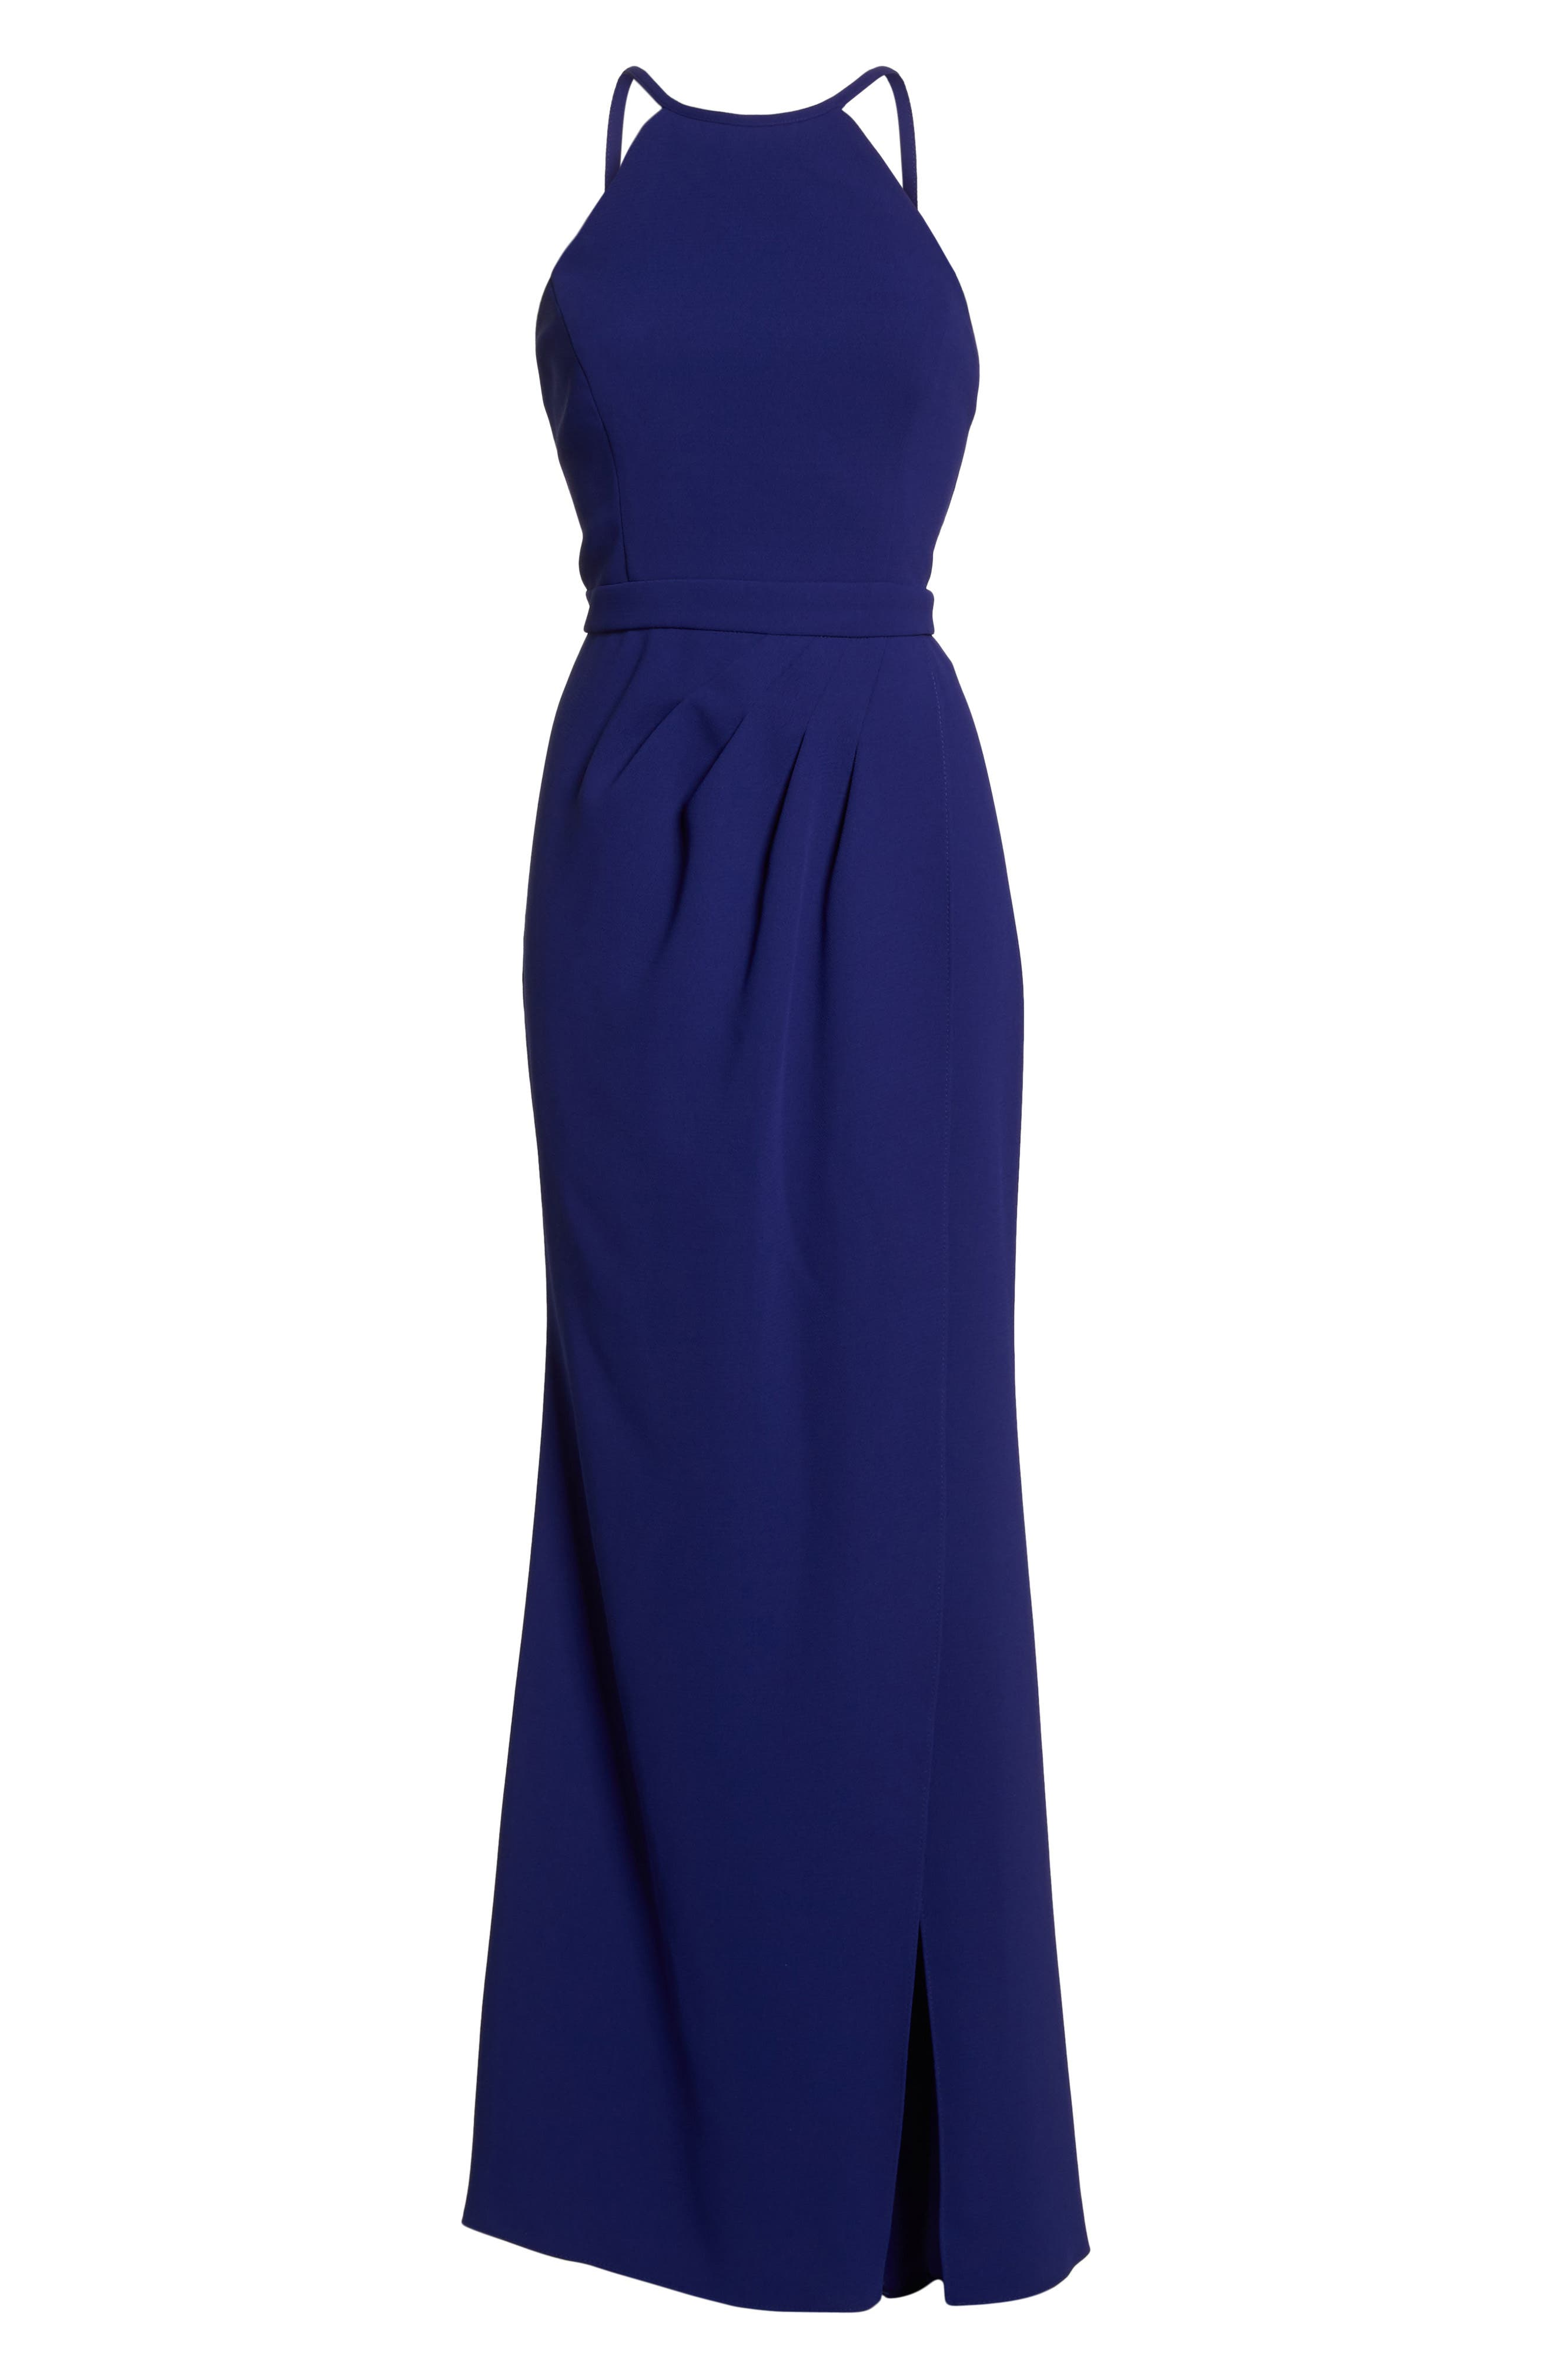 High Neck Gown,                             Alternate thumbnail 7, color,                             430